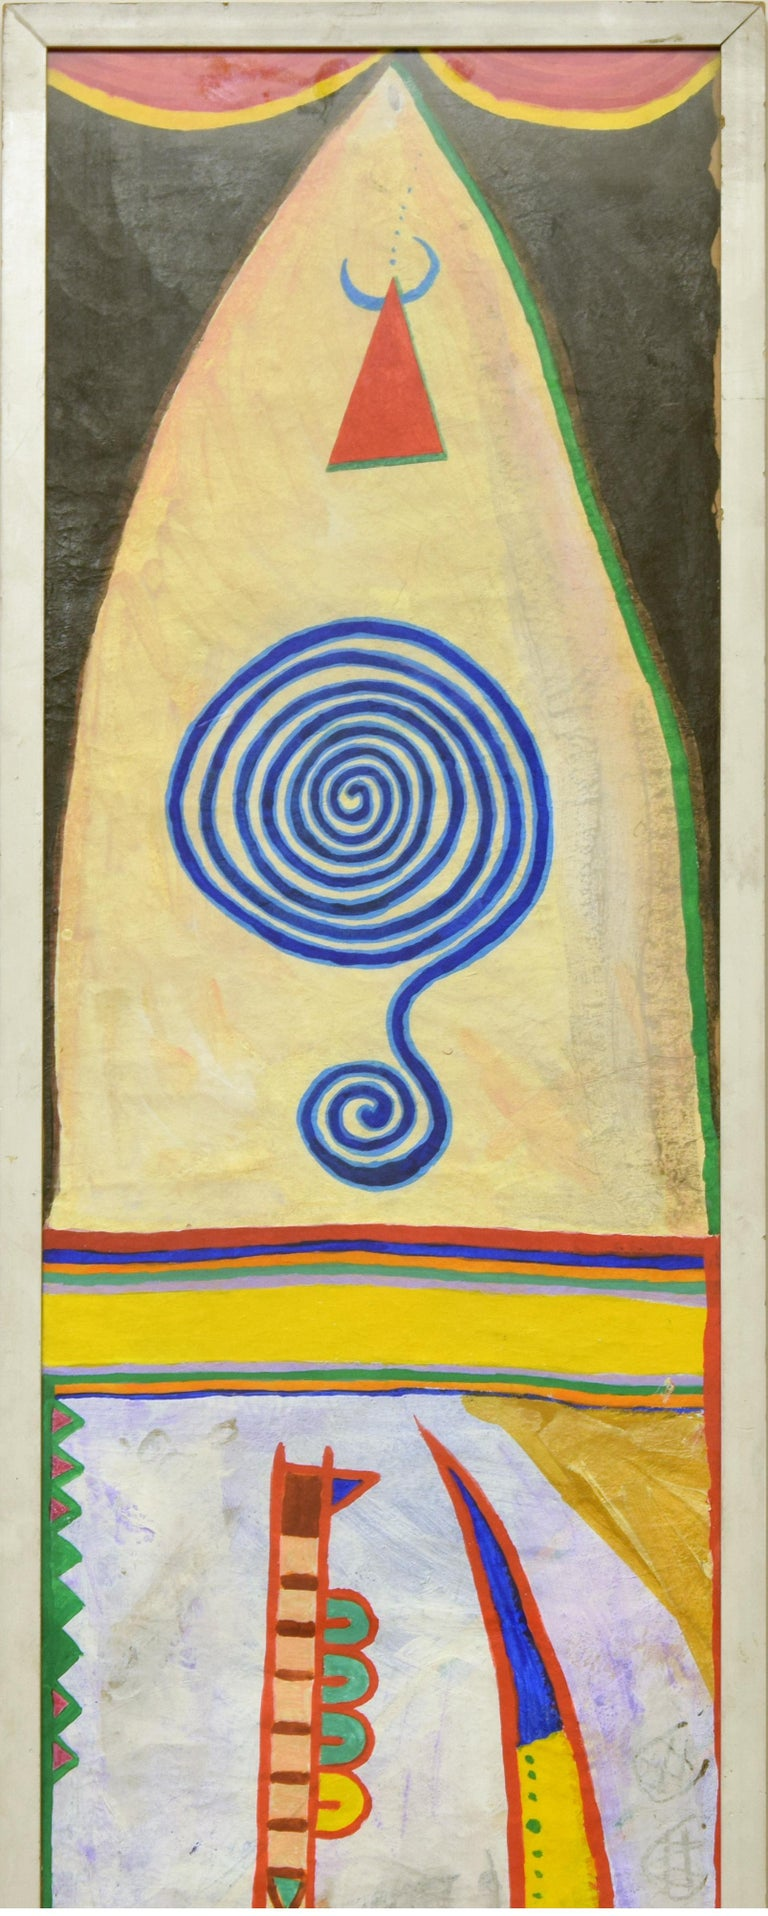 Boomerang - Acrylic Painting on Rice Paper by Martin Bradley - 1978 For Sale 2